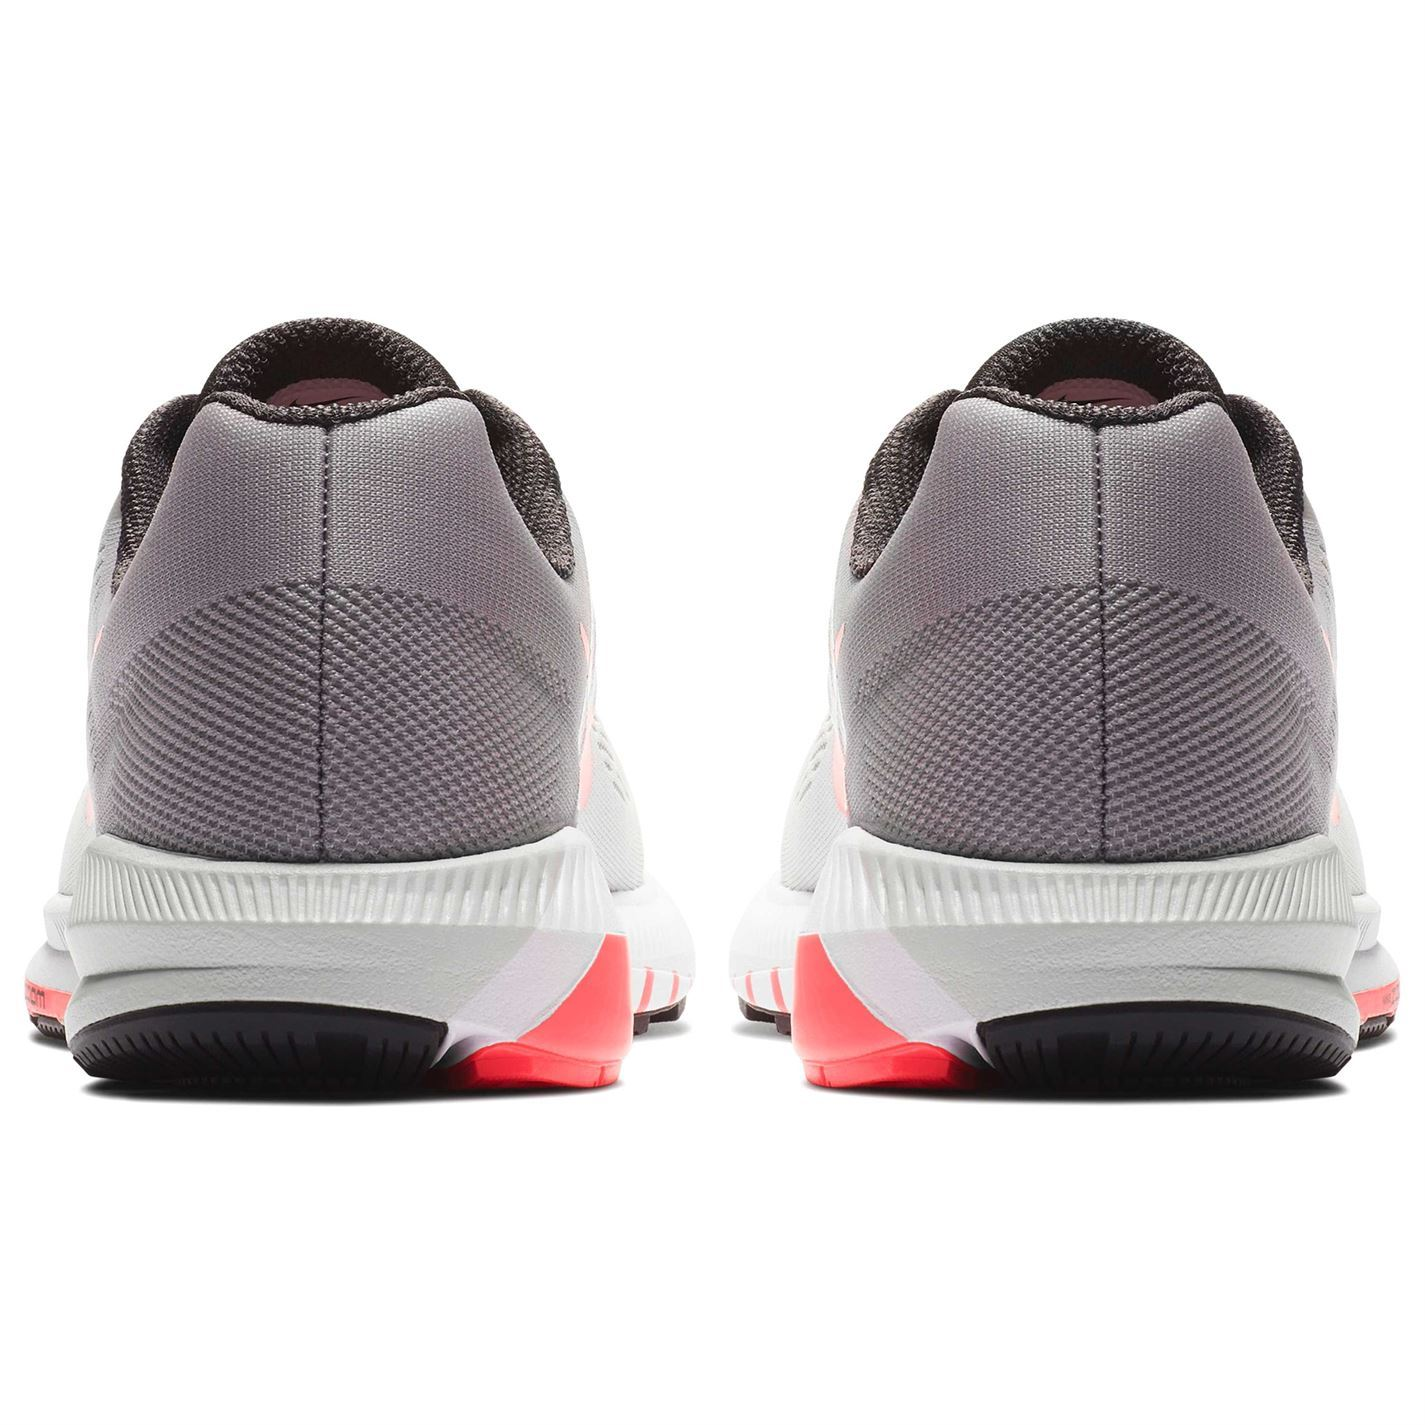 online retailer 66801 04930 ... Nike Air Zoom Structure 21 Running Shoes Womens Grey Pink Trainers  Sneakers ...